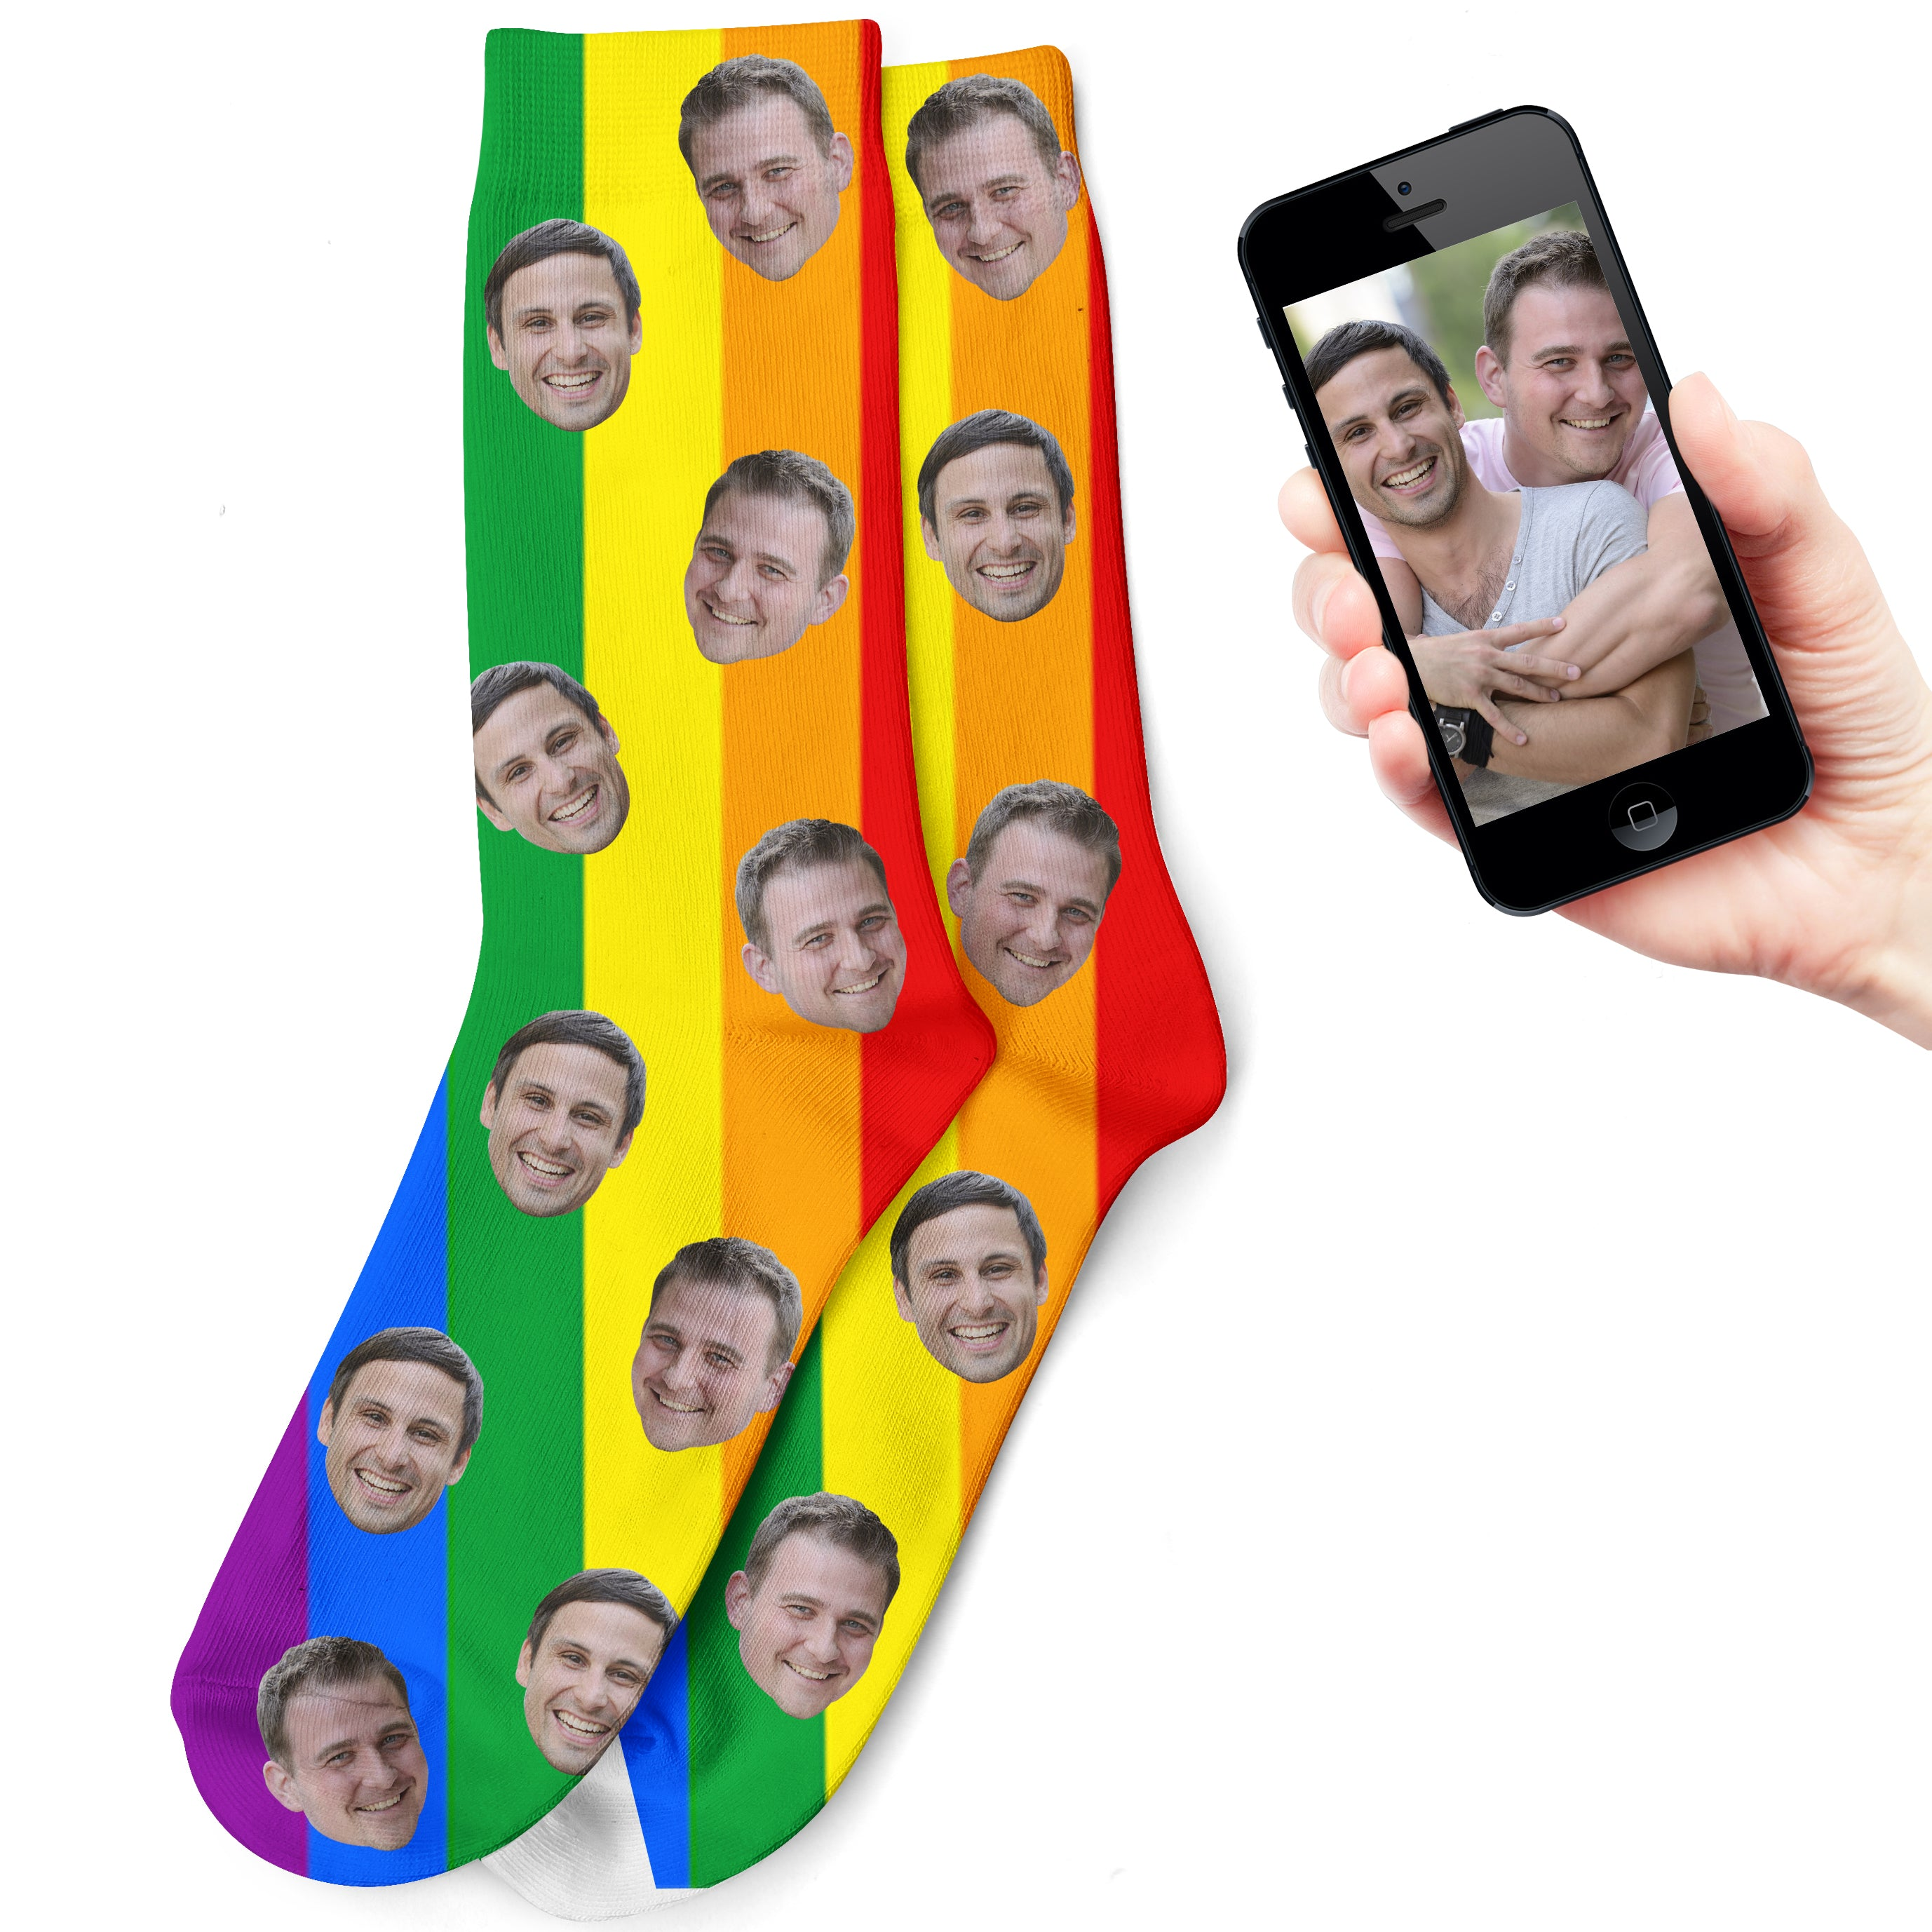 Gay Pride Socks - LGBT Socks, Personalize Socks with your face